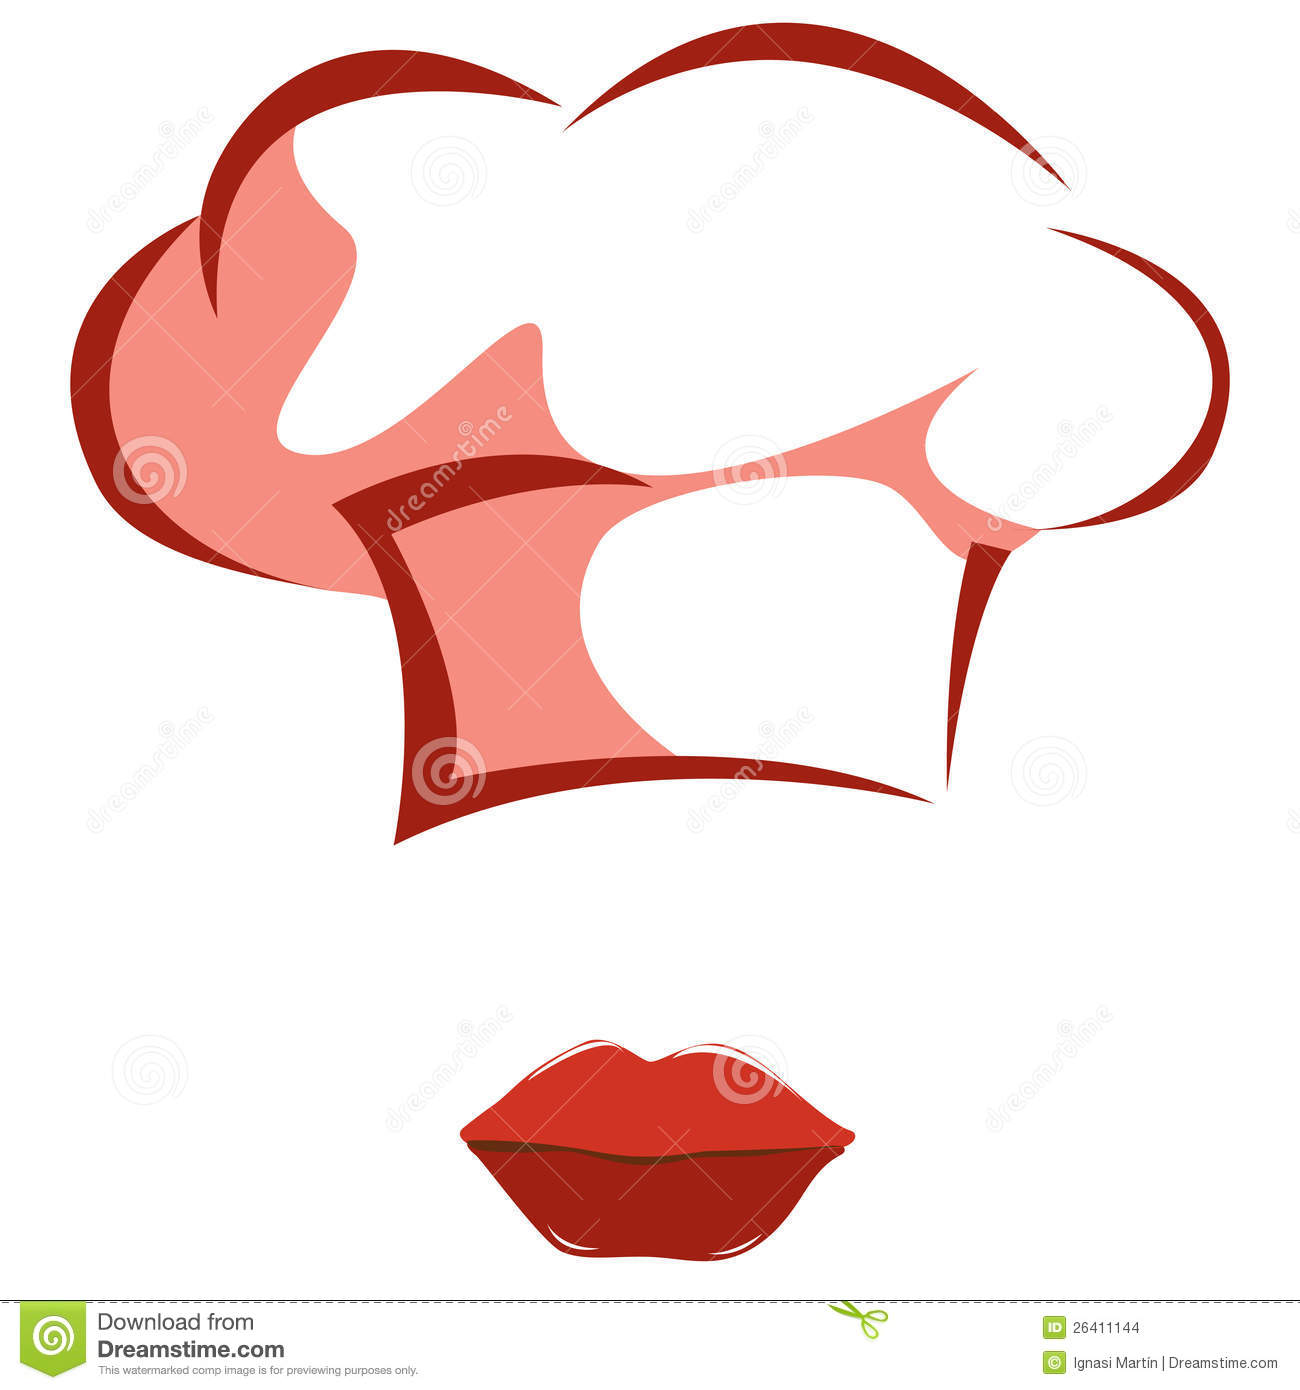 Woman's Chef Hat Stock Images - Image: 26411144